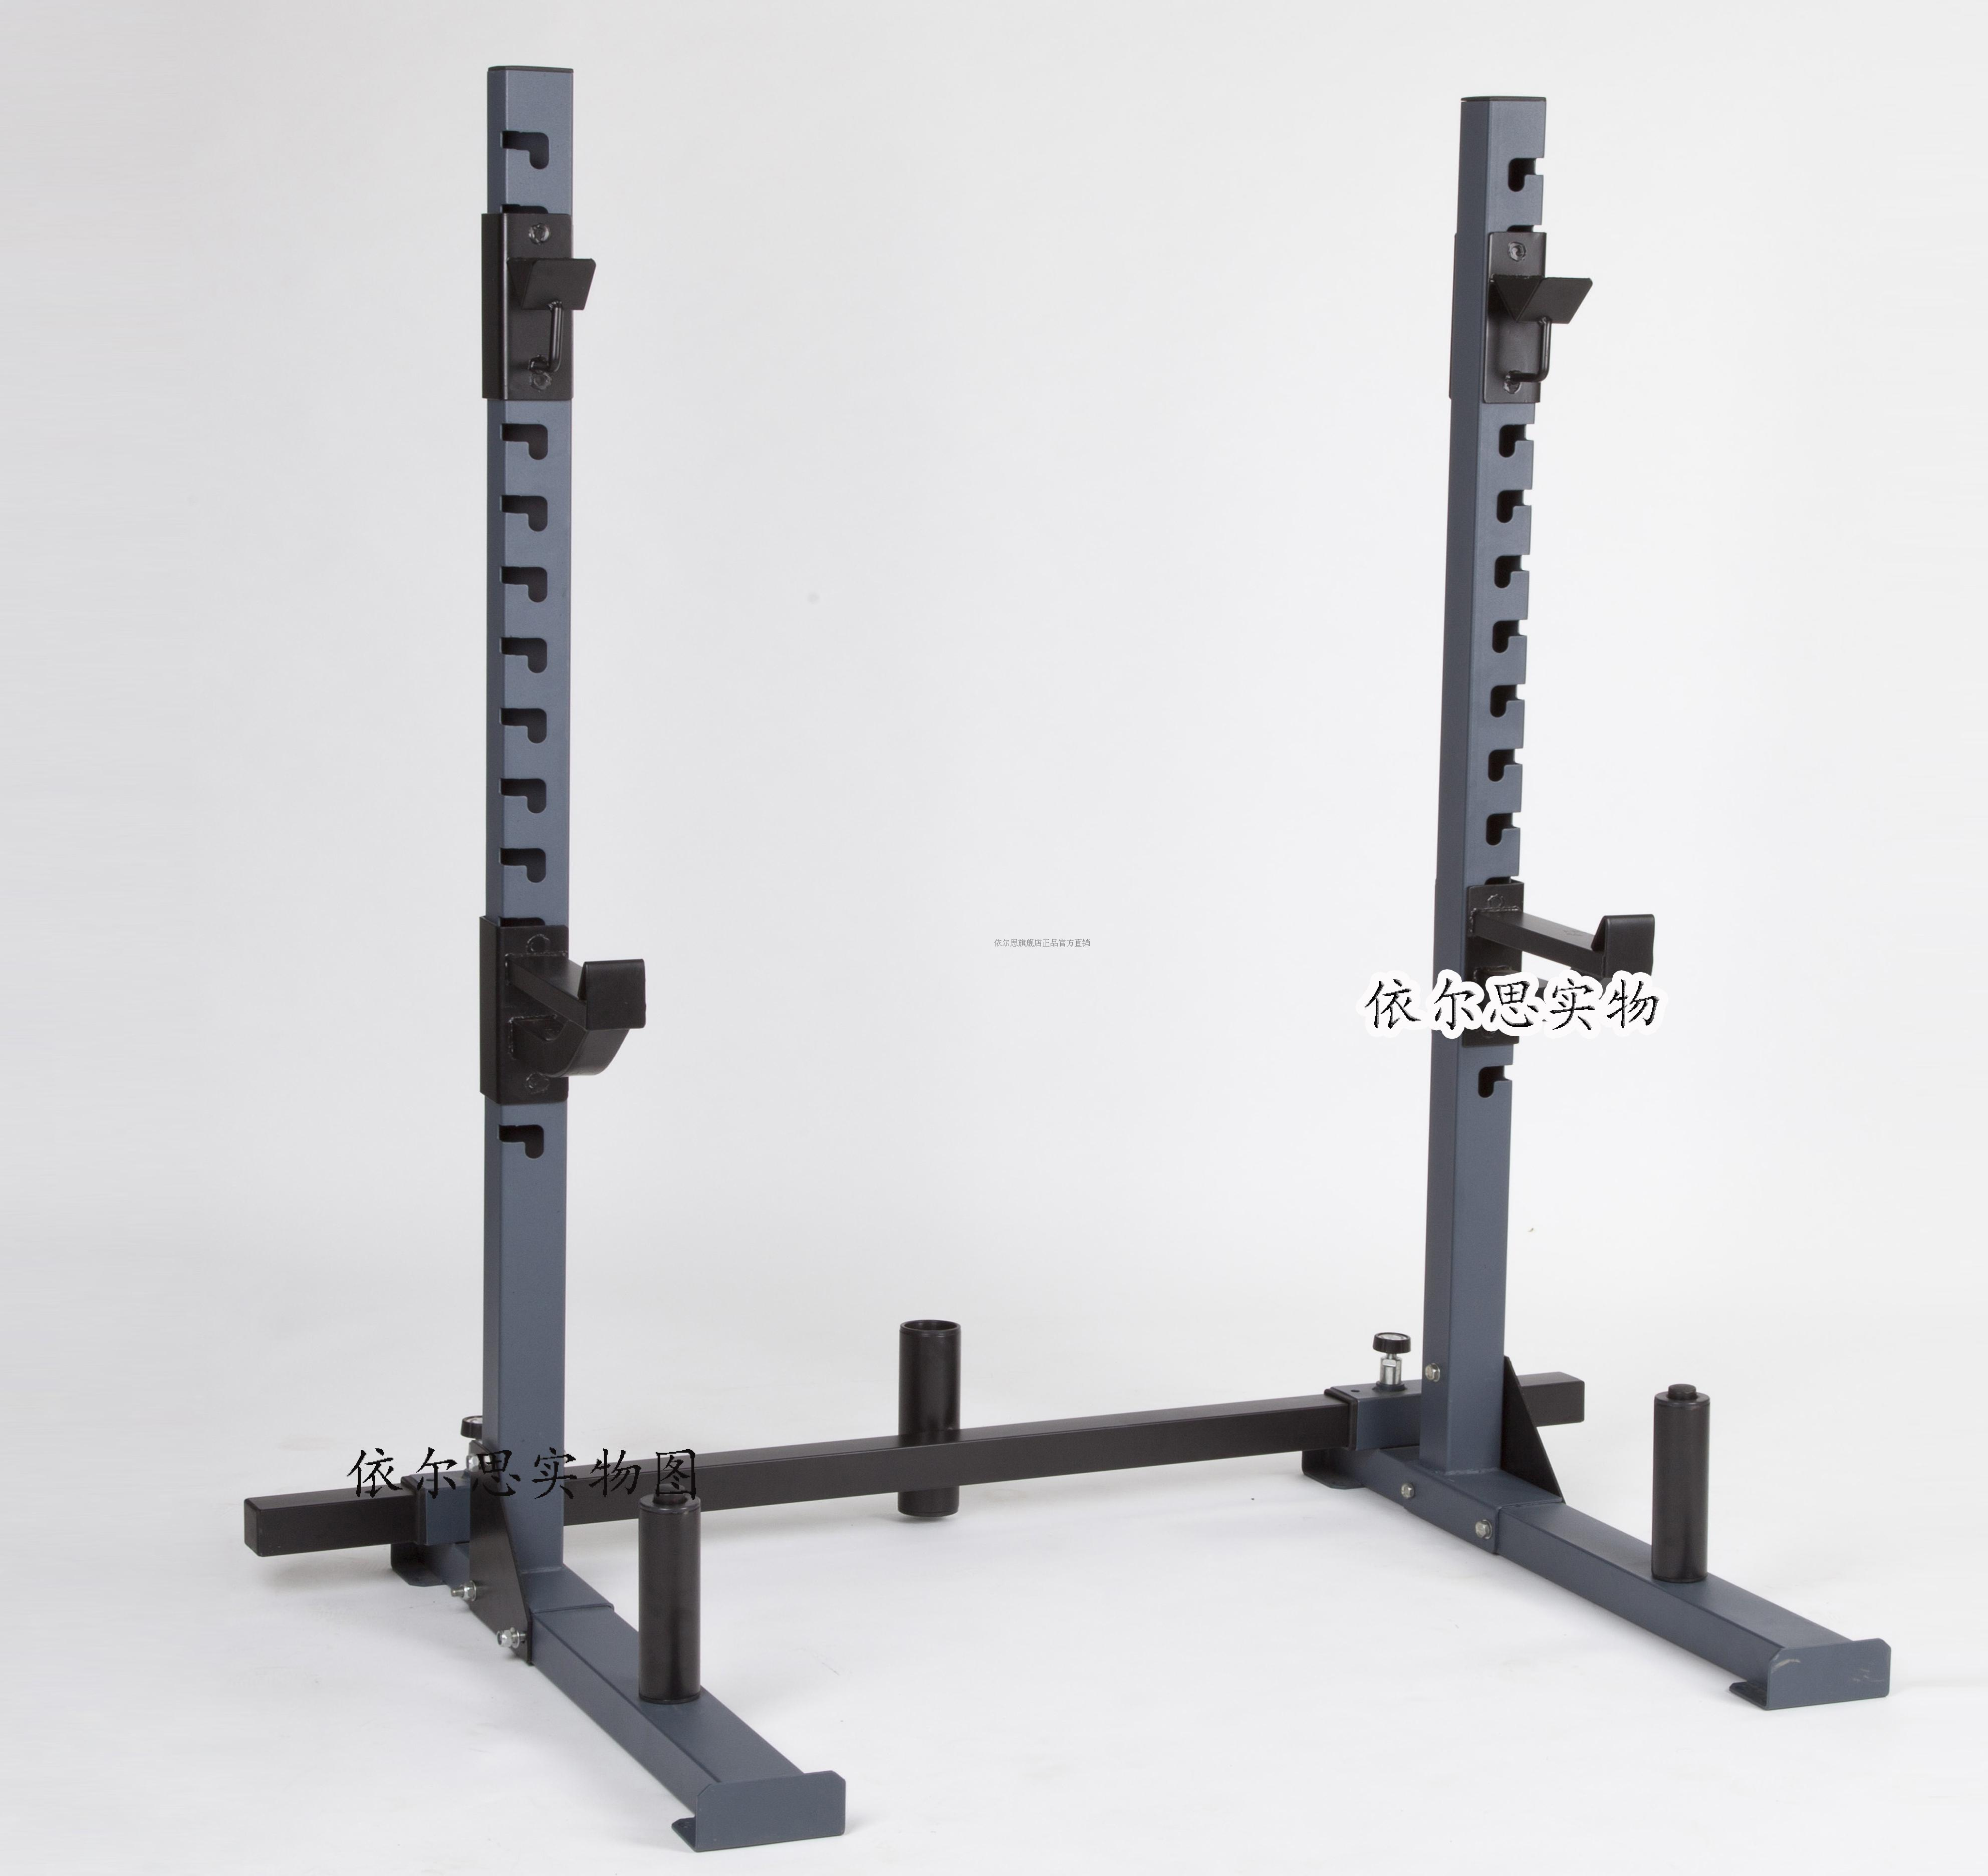 megatec racks sam compact prs lat s bench squat smiths fair mt cages power dinkum stands a image press rack flexible and feature system pulldown fitness